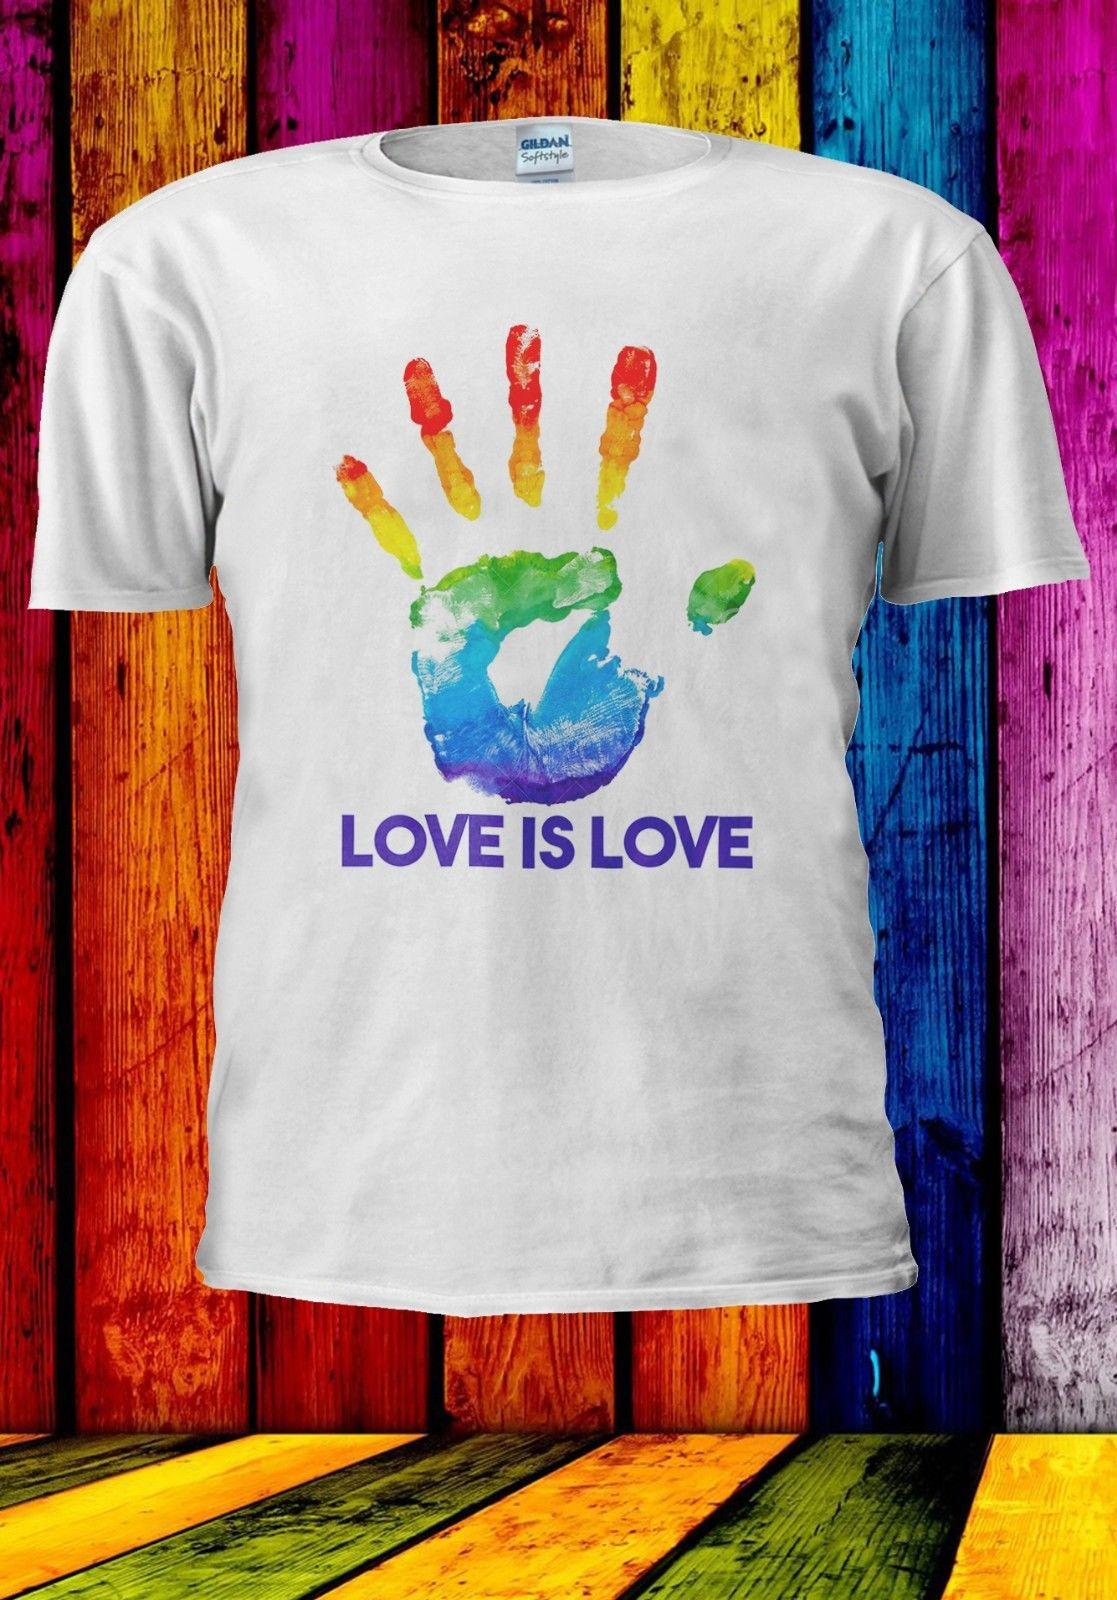 c589cc979 Hand Print Love Gay Pride Rainbow Lesbian LGBT Men Women Unisex T Shirt  941Funny Unisex Casual Tshirt Retro Shirts Awesome Shirts From  Deepseastation, ...